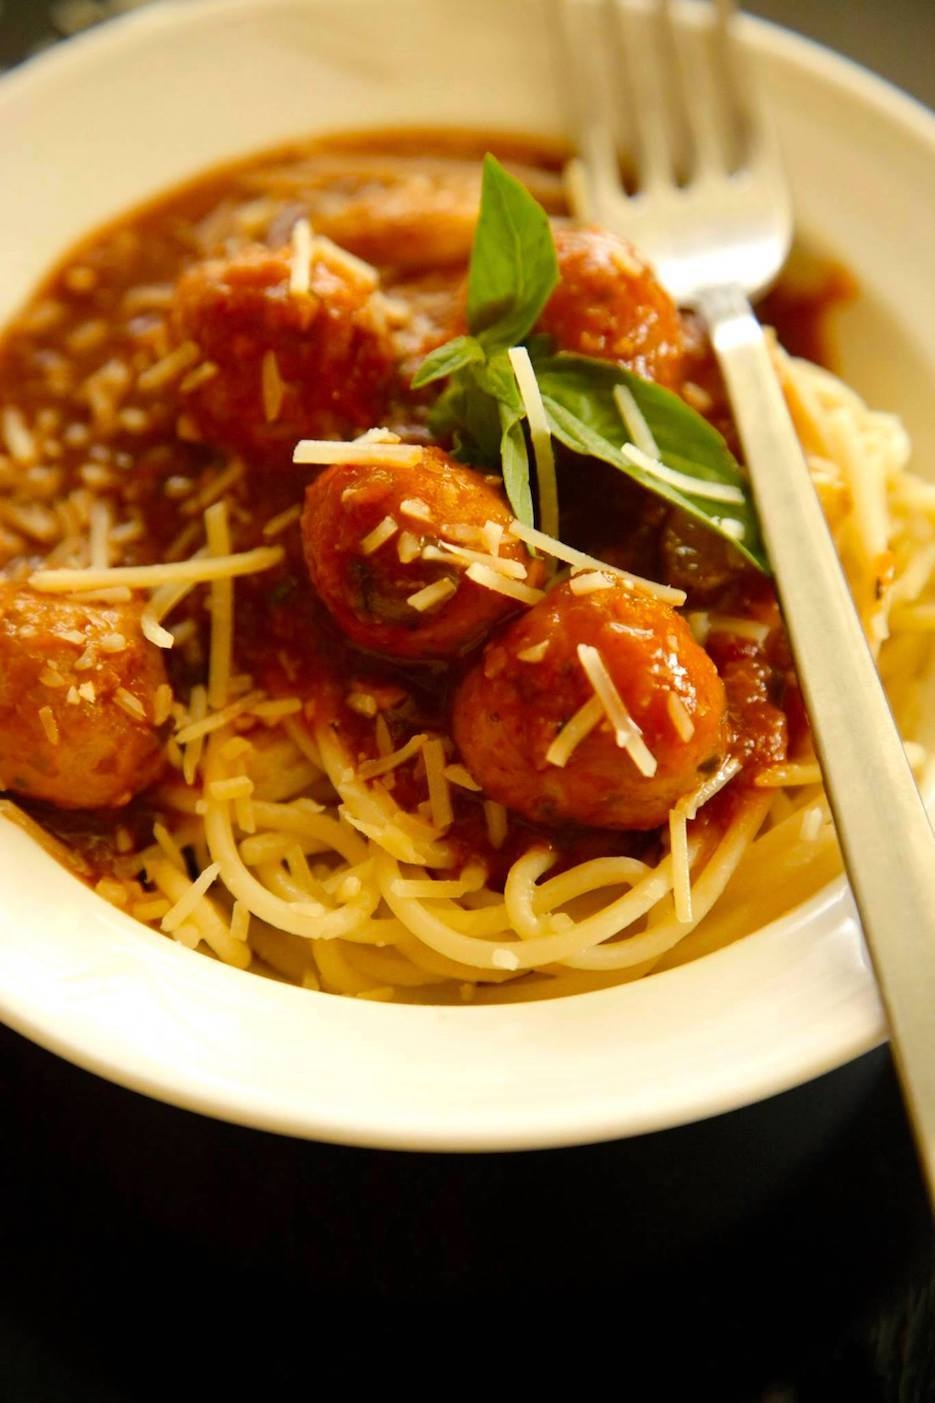 MUMBAI MEATBALL IN SAUCE WITH SPAGHETTI